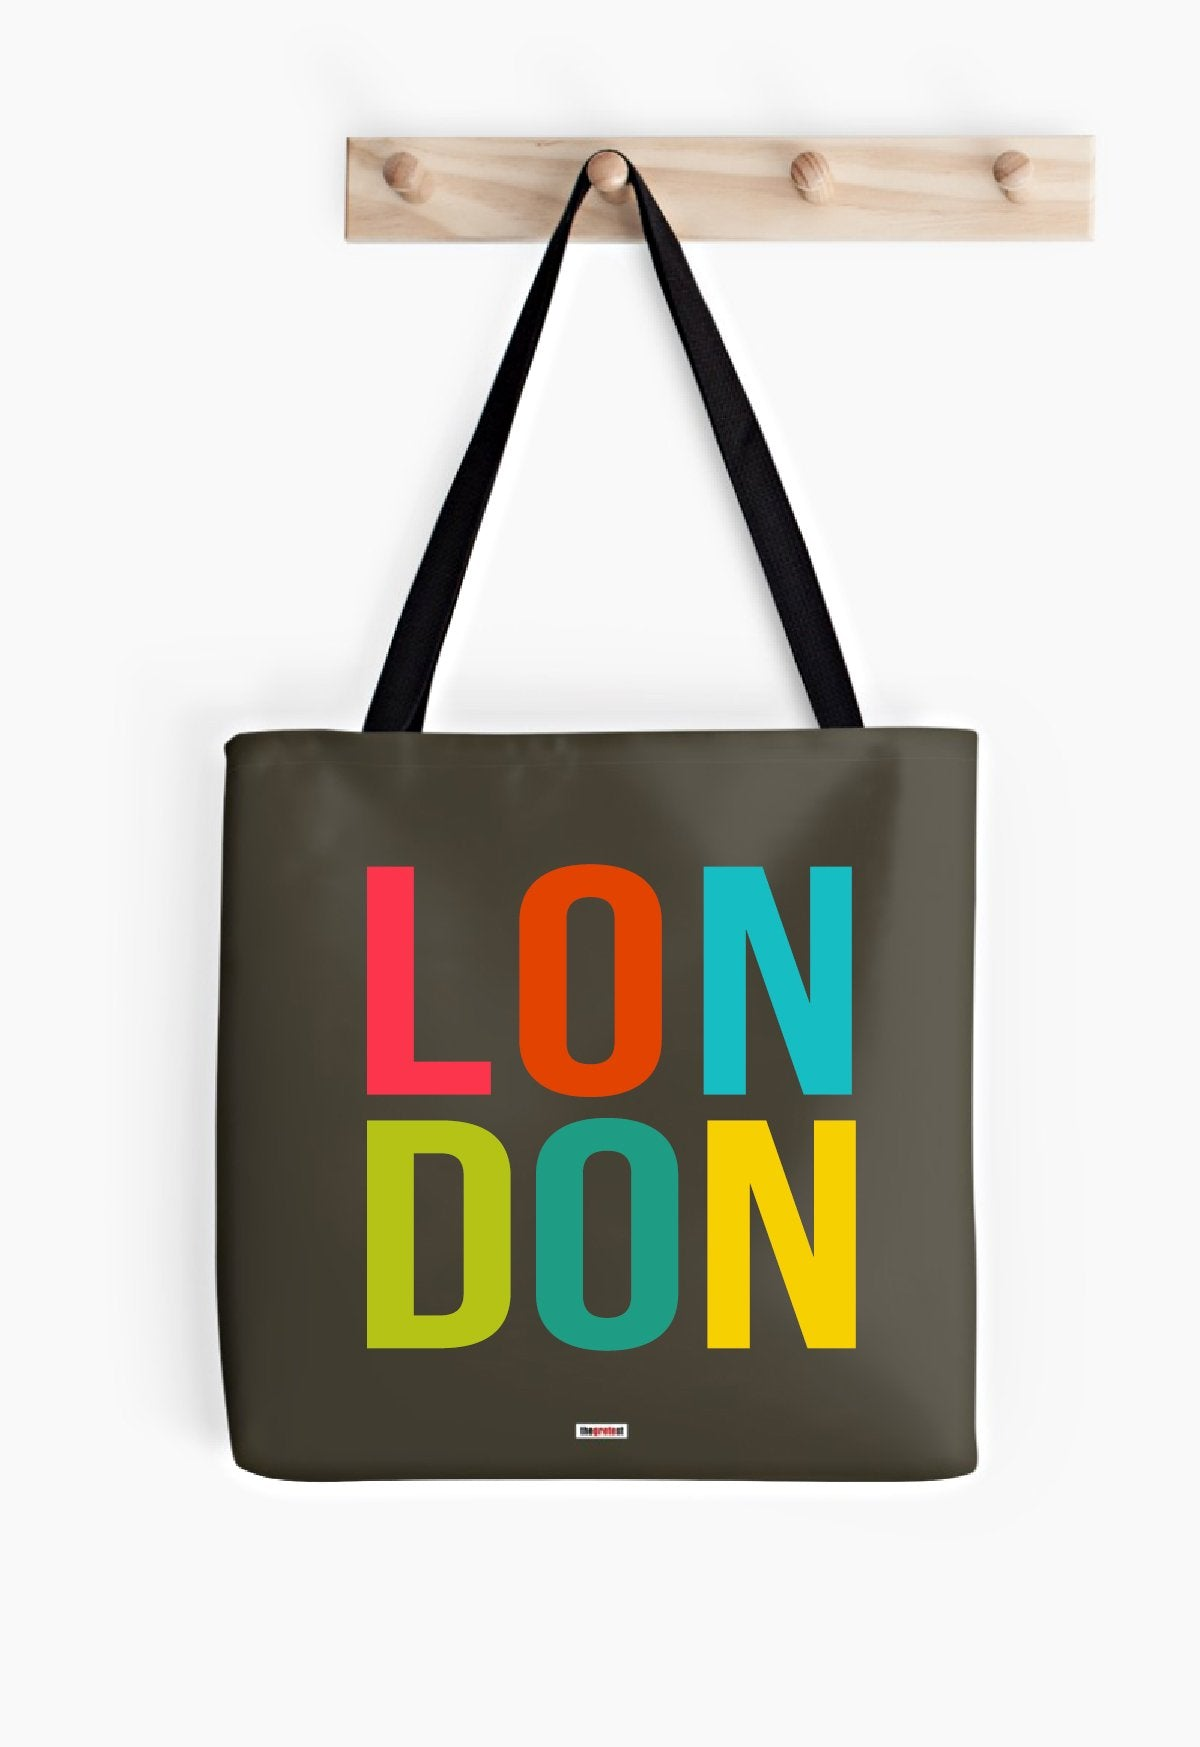 London Tote bag - London bag-TheGretest